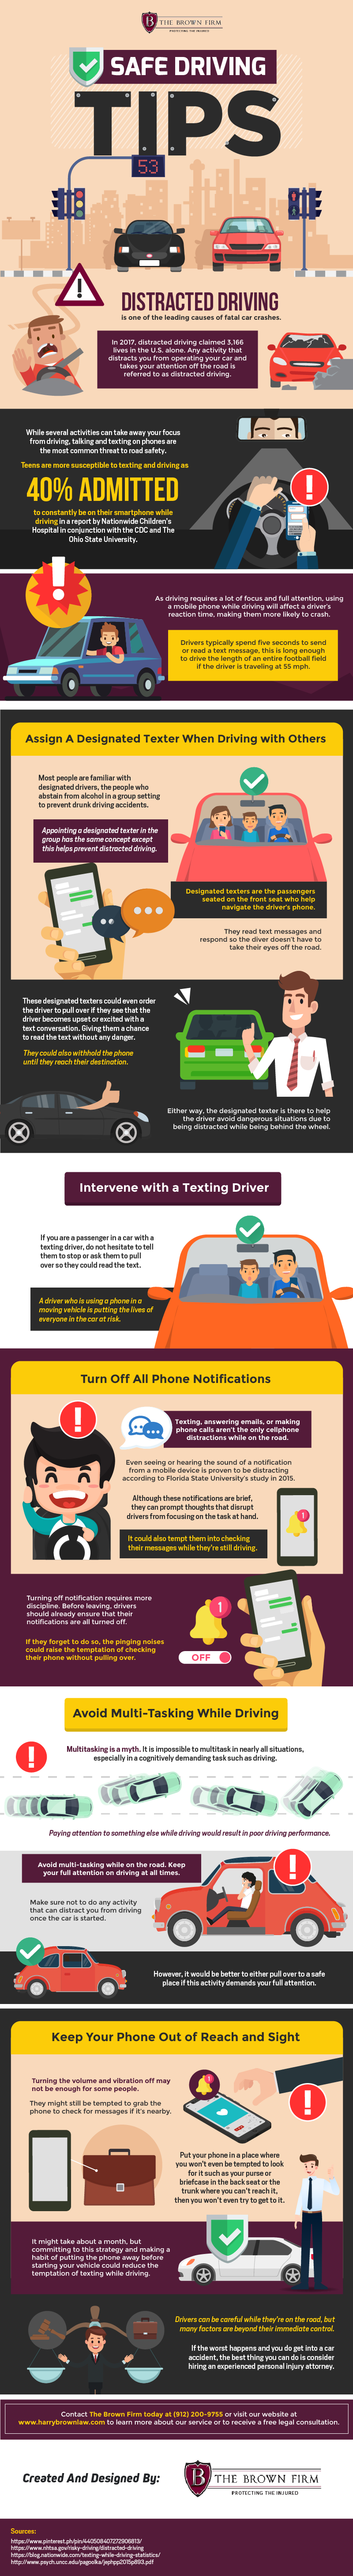 Safe Driving Tips #infographic